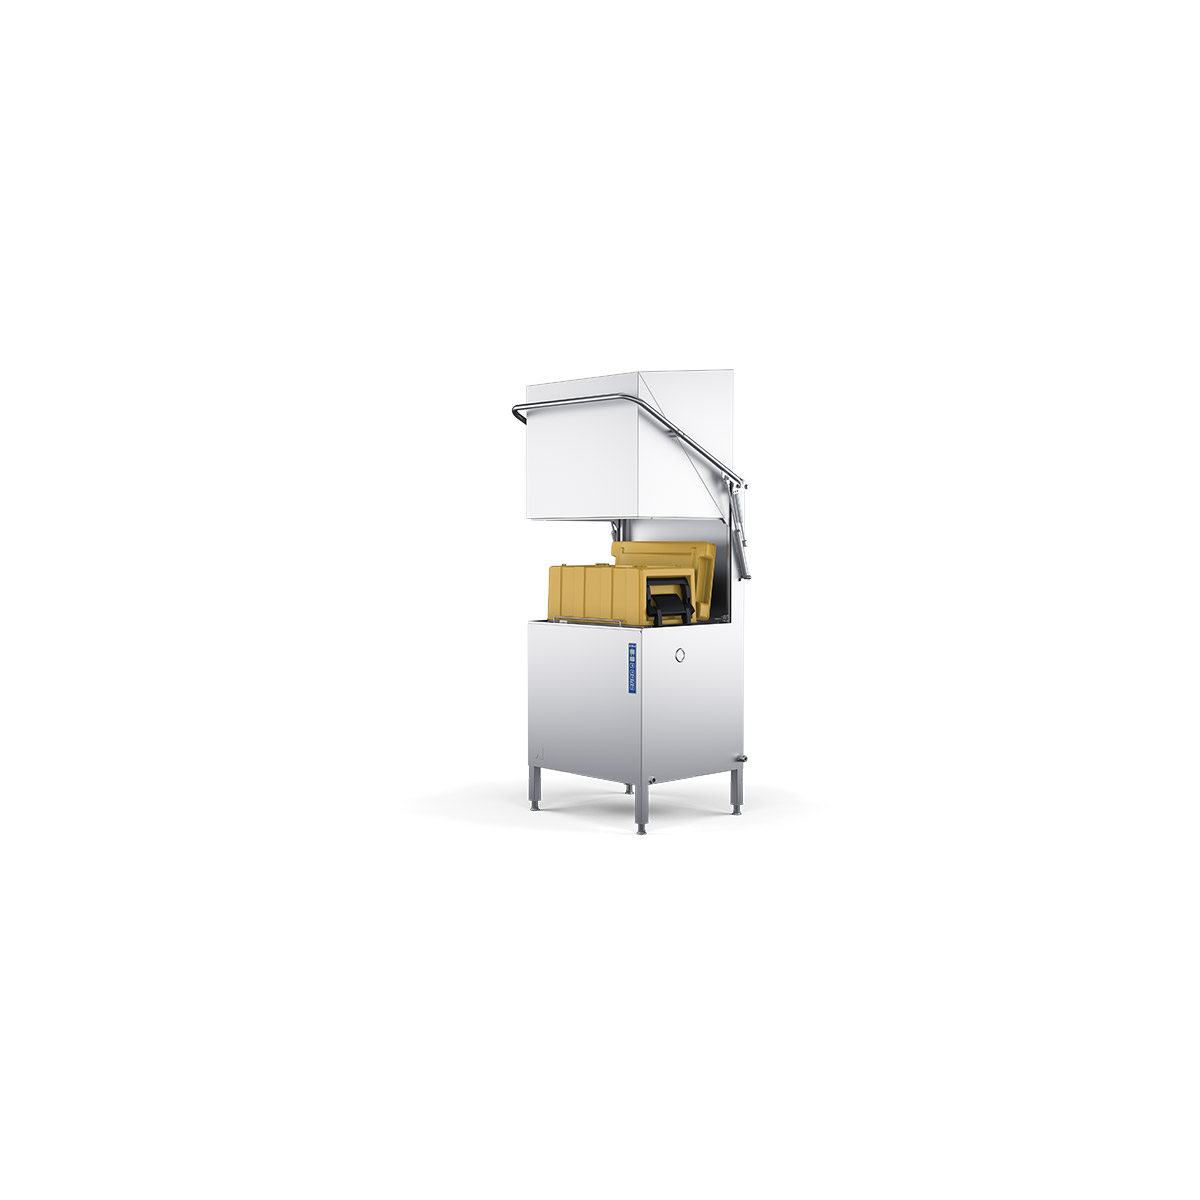 Wexiodisk Passthrough Dishwasher WD-8